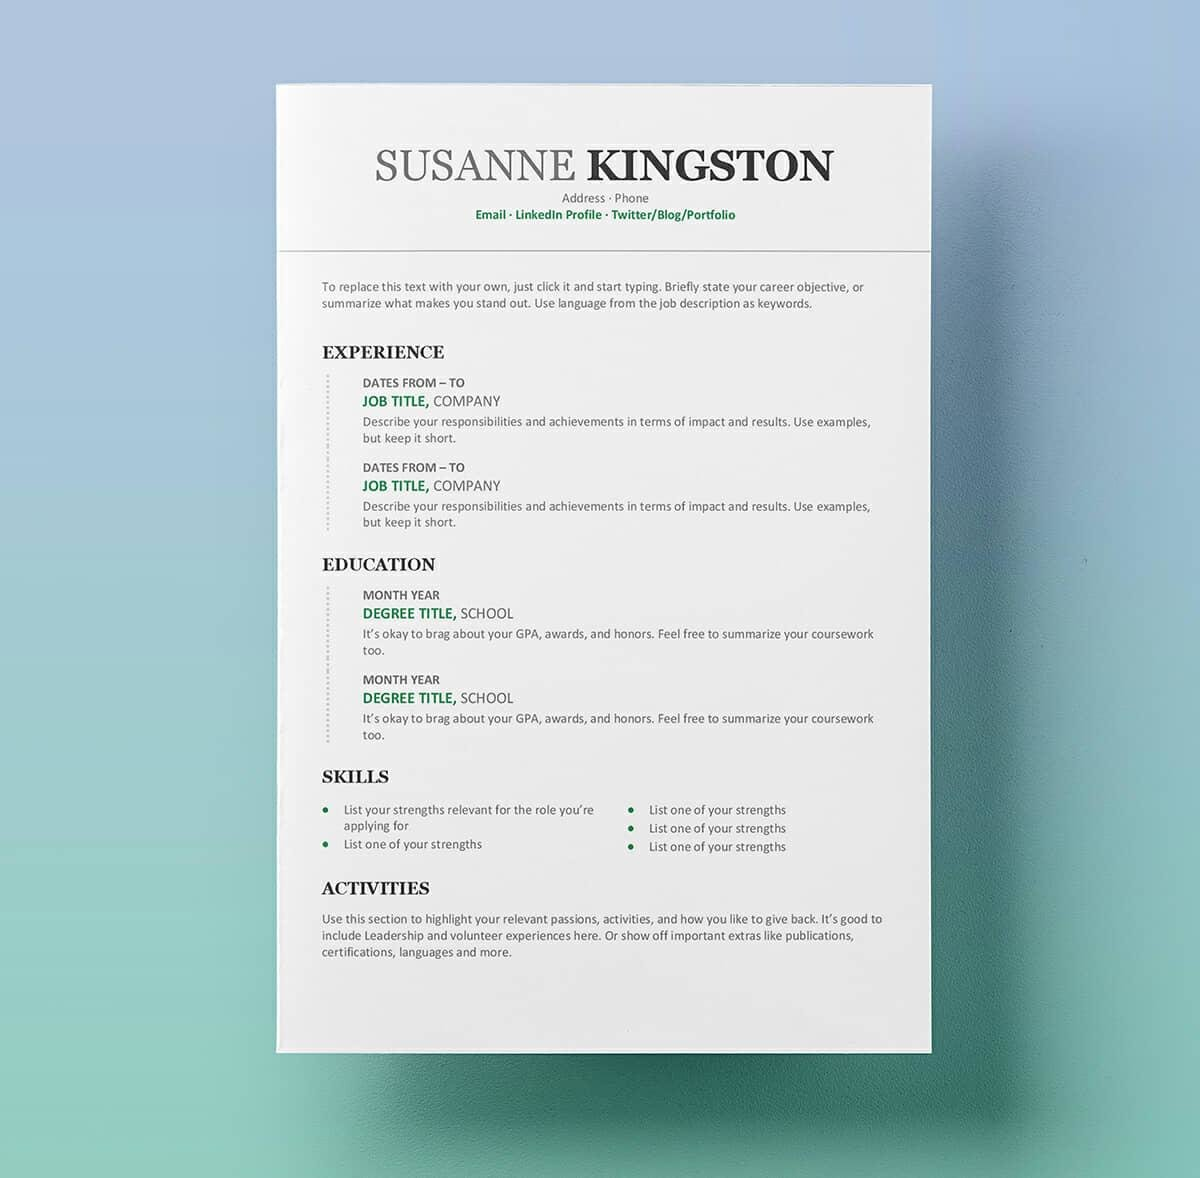 Best Free Resume Templates Microsoft Word Mokka Commongroundsapex Co